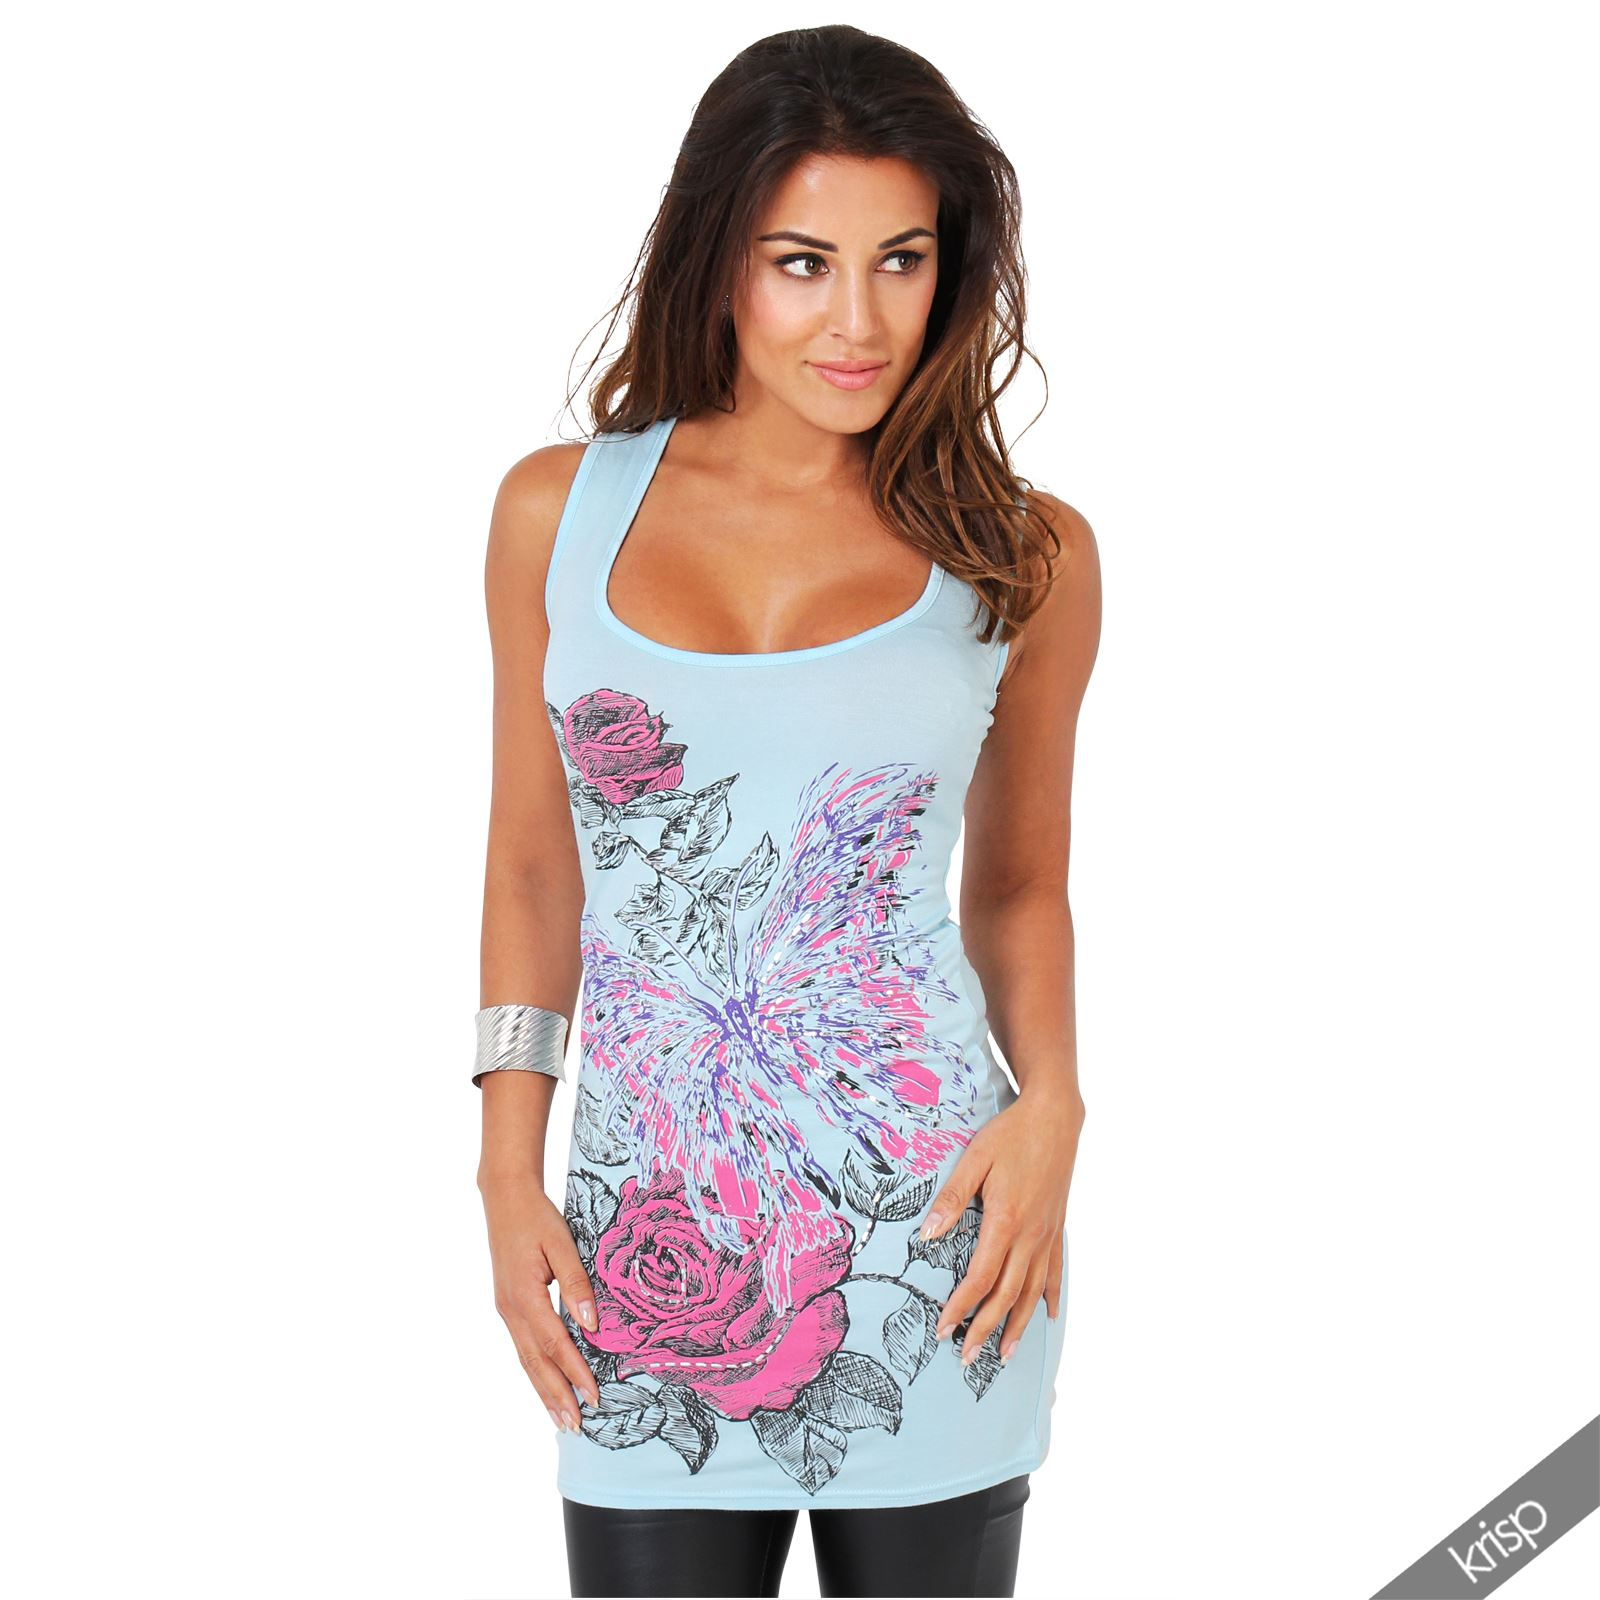 Womens Tops and Shirts from Jack Wills are Available in Various Colours and Sizes. Ladies Tops.